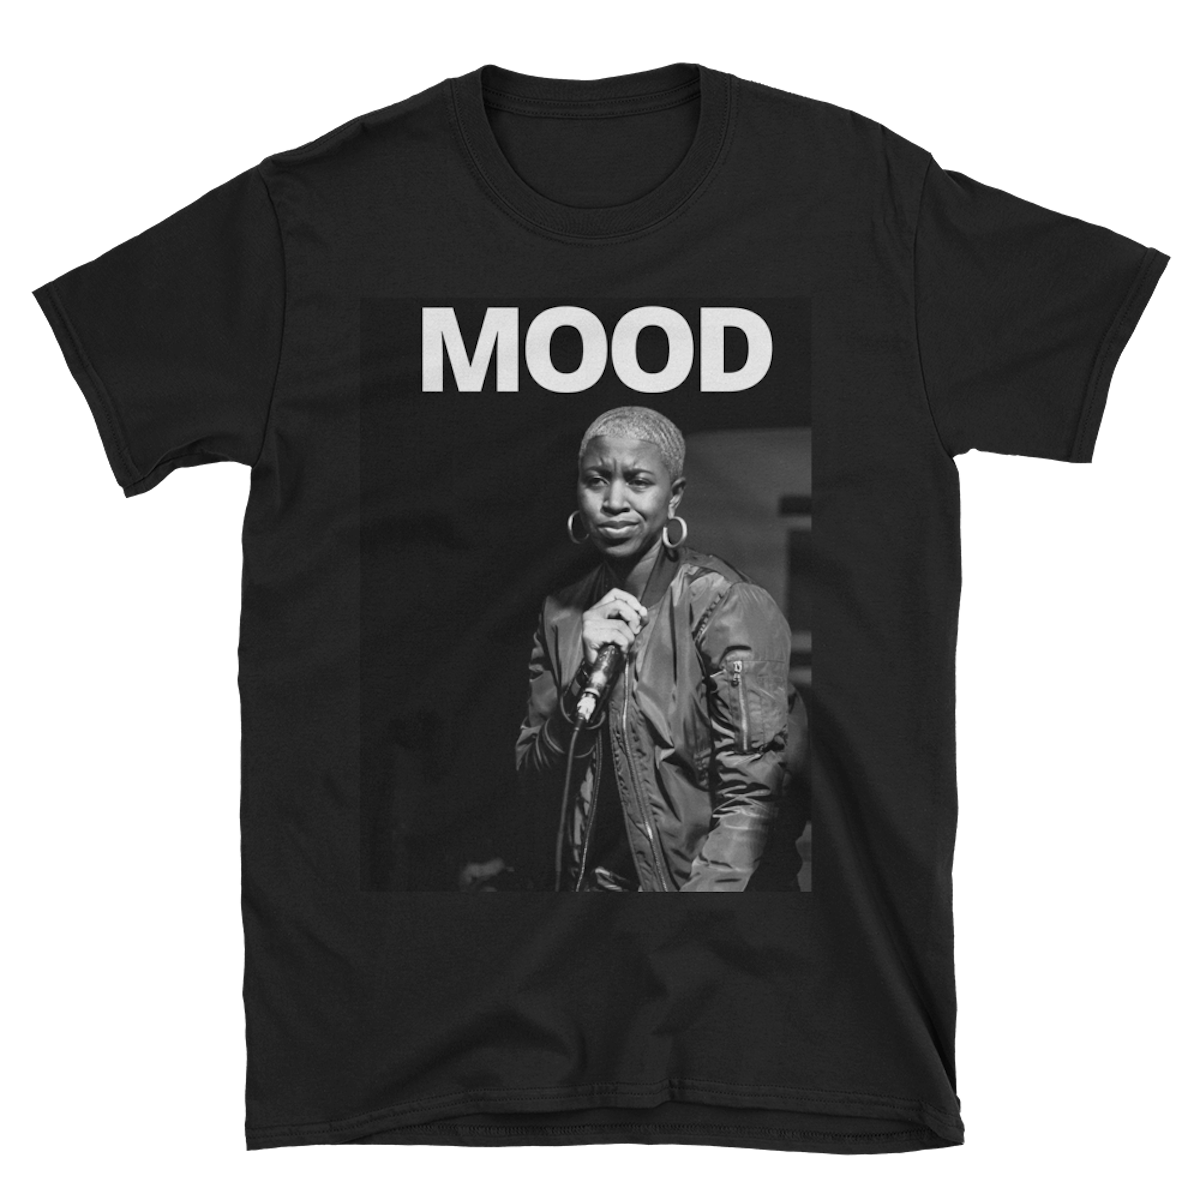 Jones Stage MOOD T Shirt - $25  Available in Black